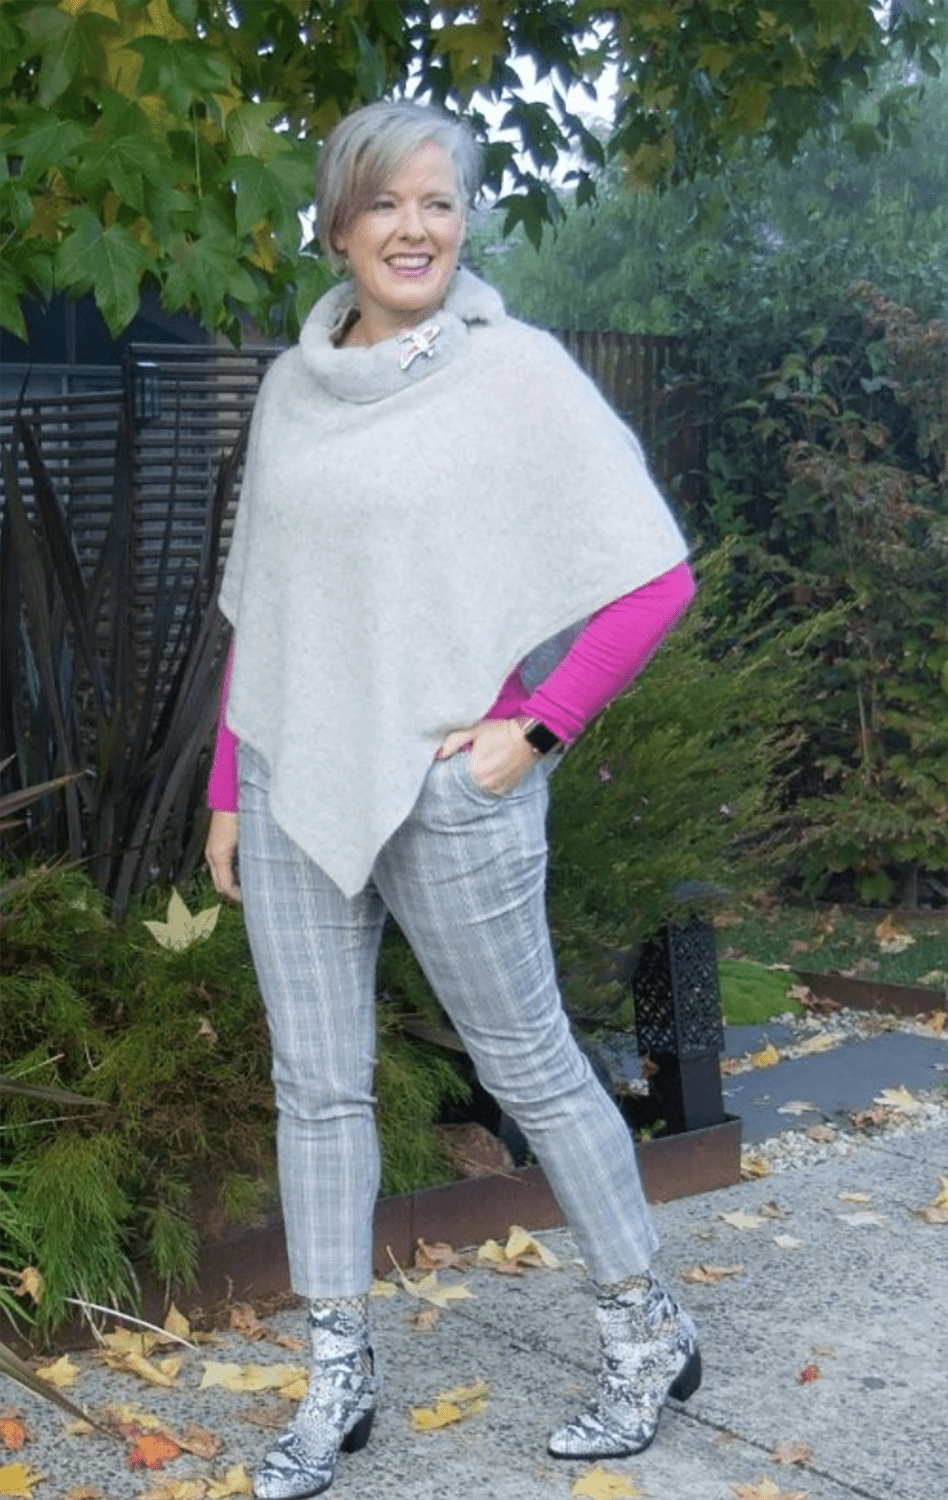 Image Consultant imogen in gray poncho